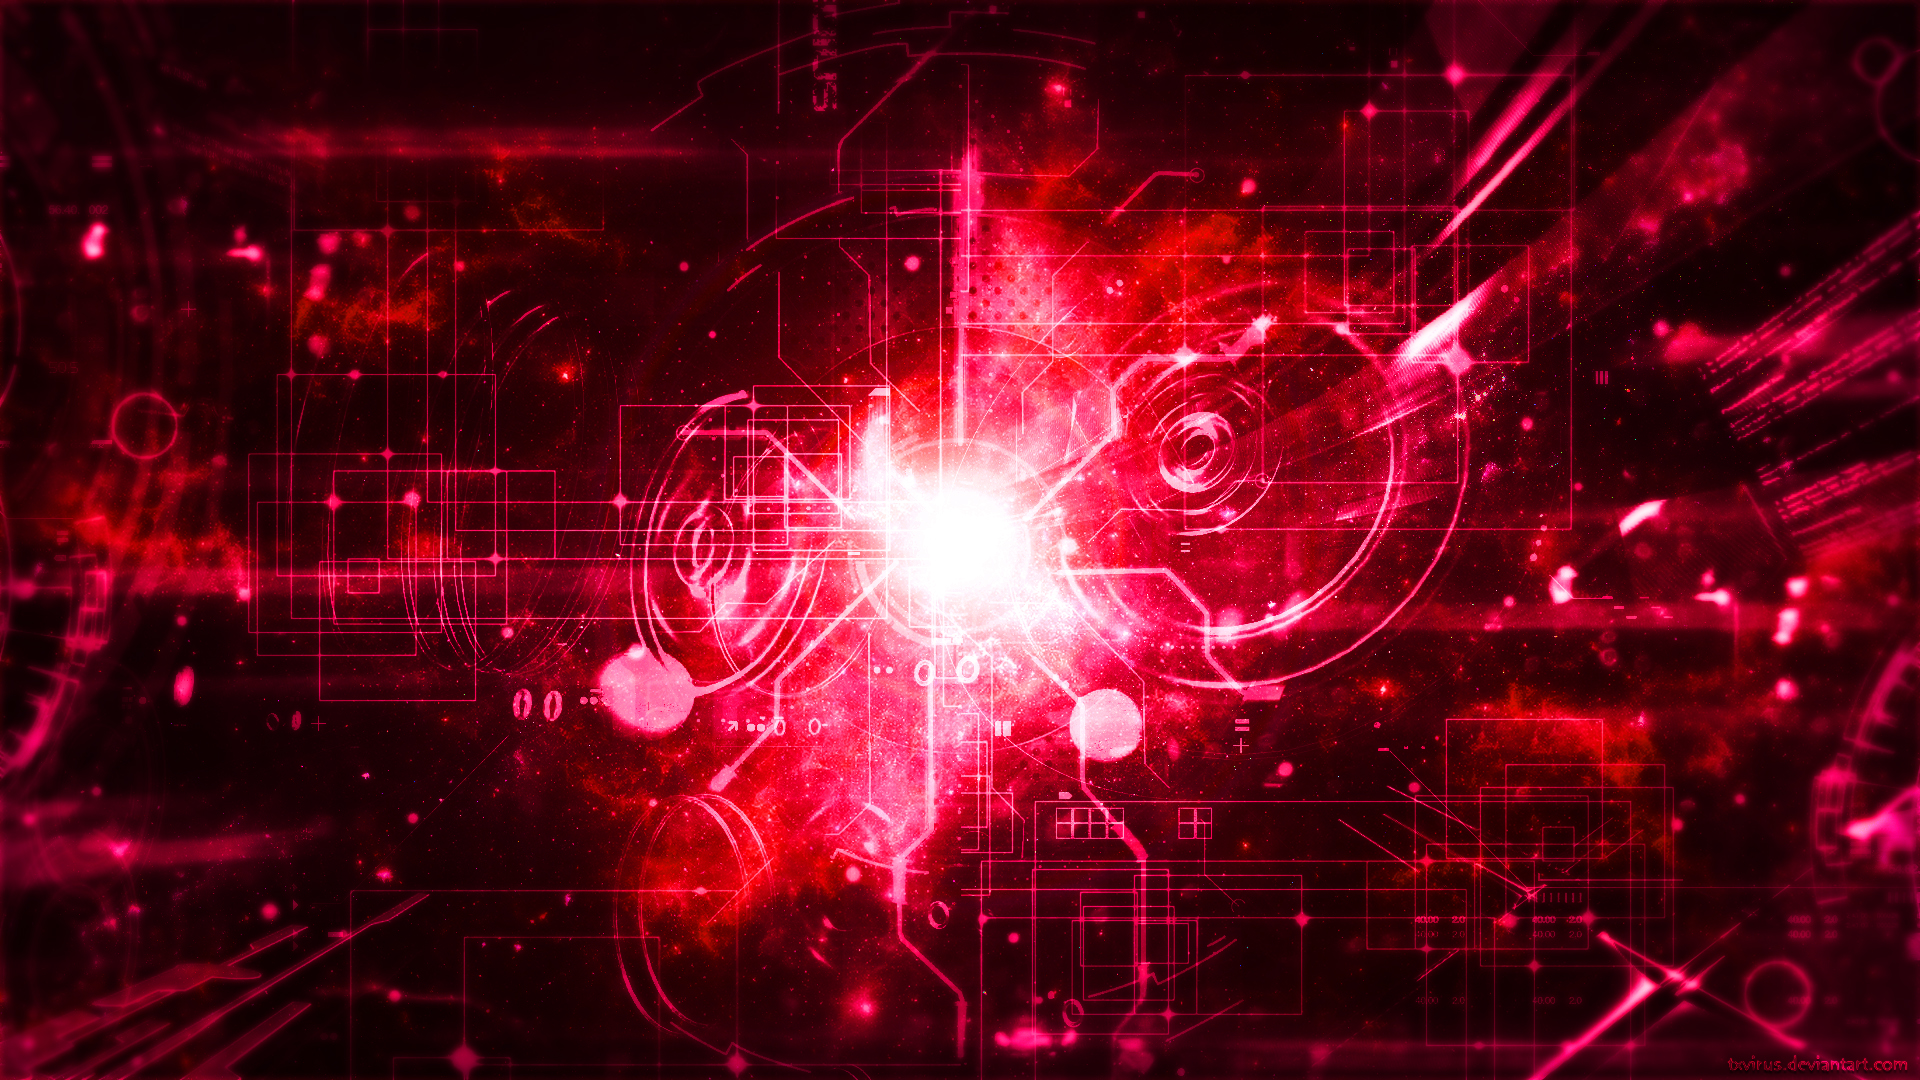 Techno Galaxy Red Lover by txvirus 1920x1080